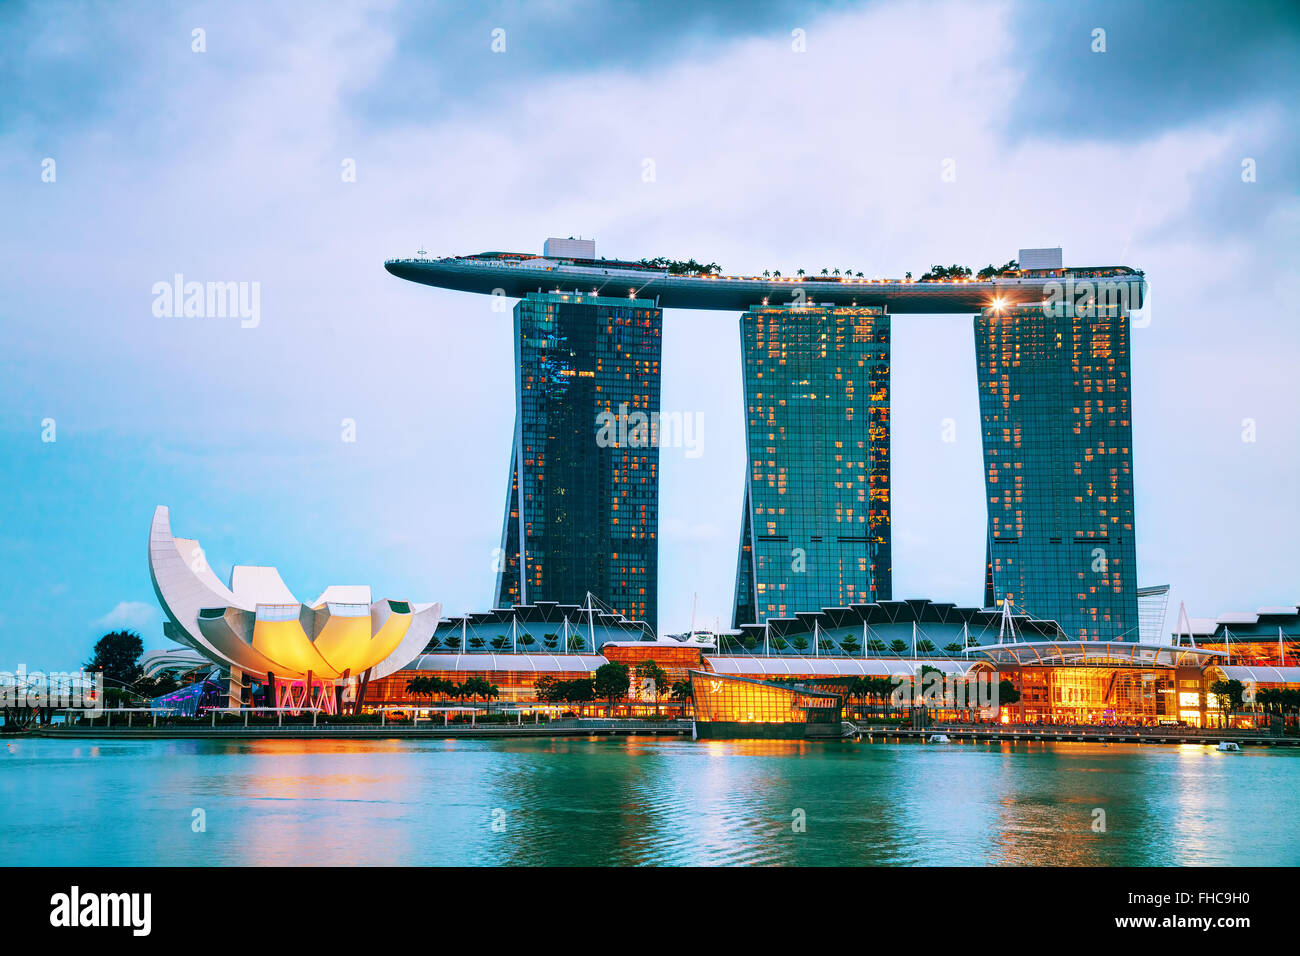 SINGAPORE - OCTOBER 30: Overview of the marina bay with Marina Bay Sands on October 30, 2015 in Singapore. - Stock Image